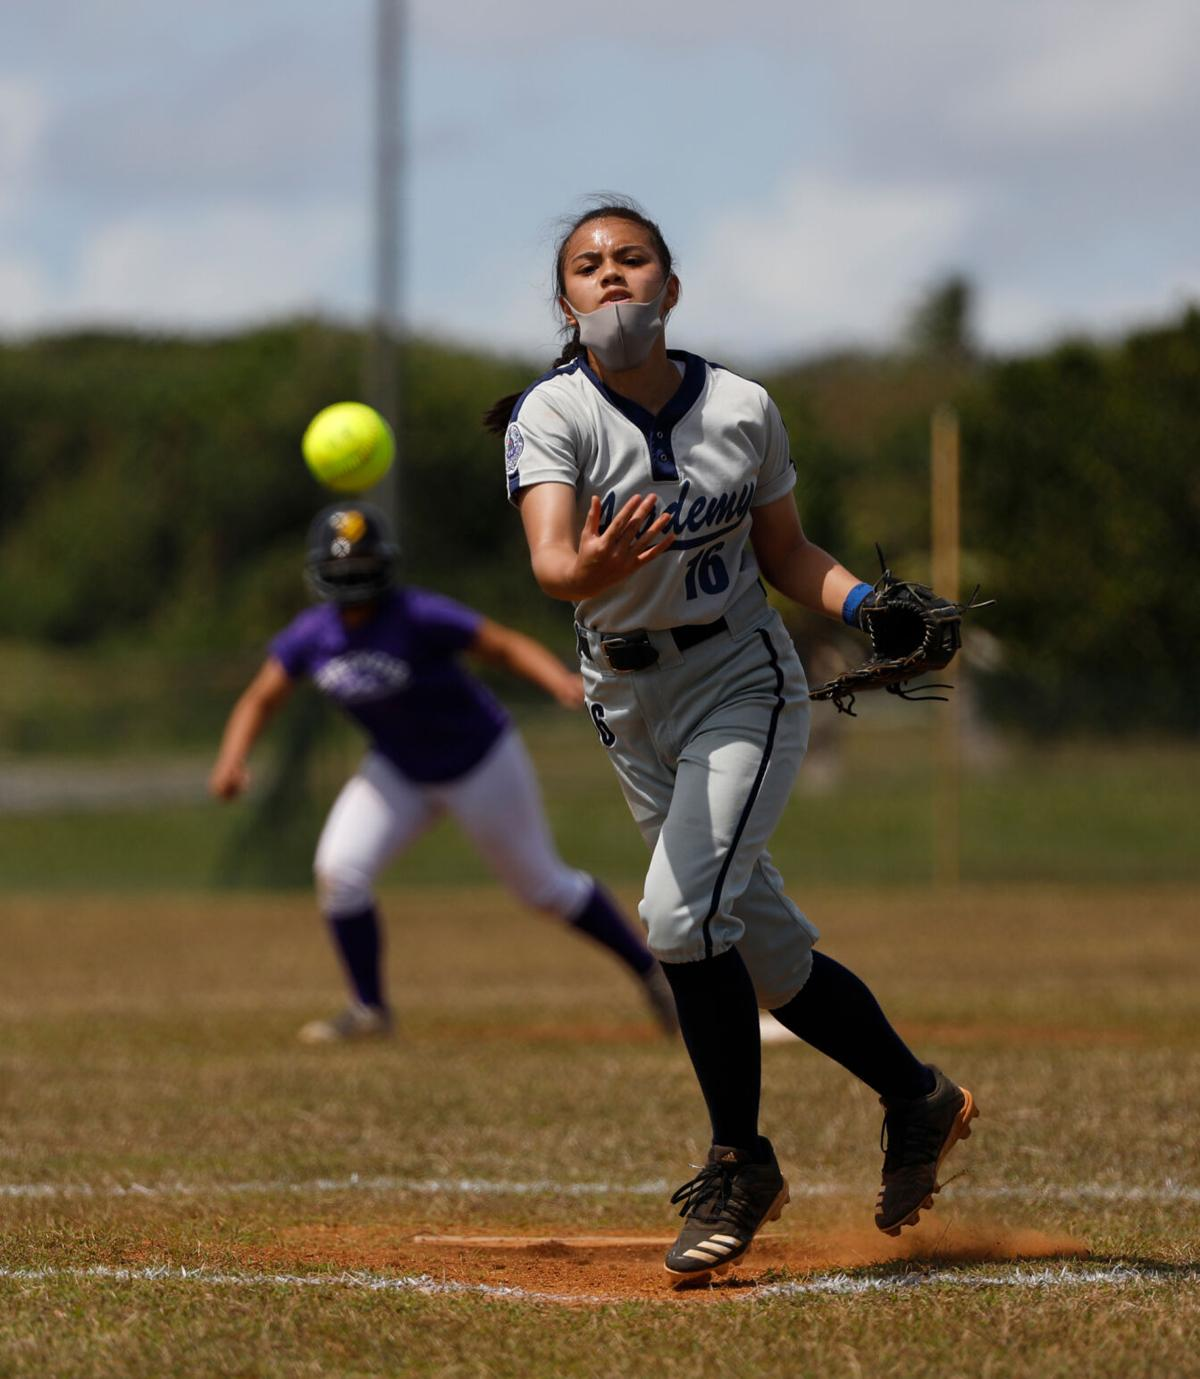 Cougars stun Geckos in softball championship game